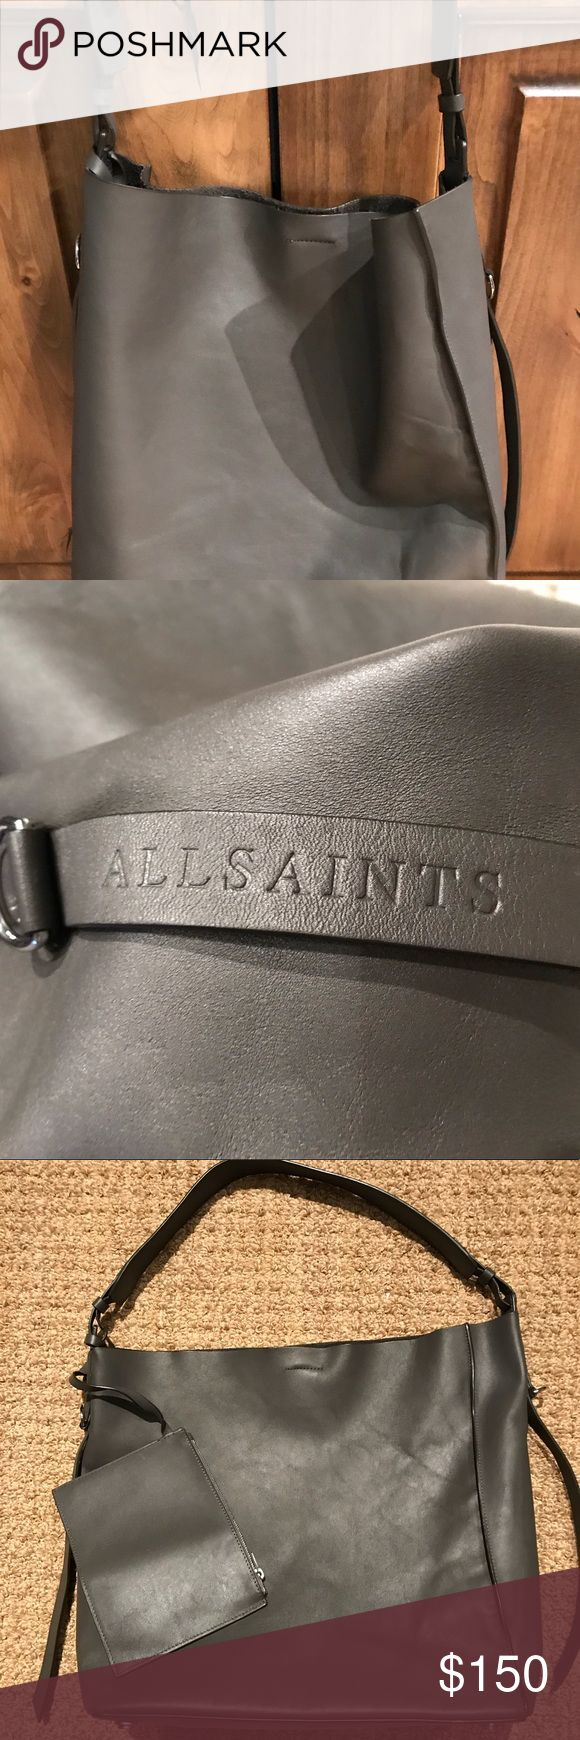 Allsaints North South bag Beautiful bag, rare color, barely used, a little stitching has come undone, Allsaints Bags Totes